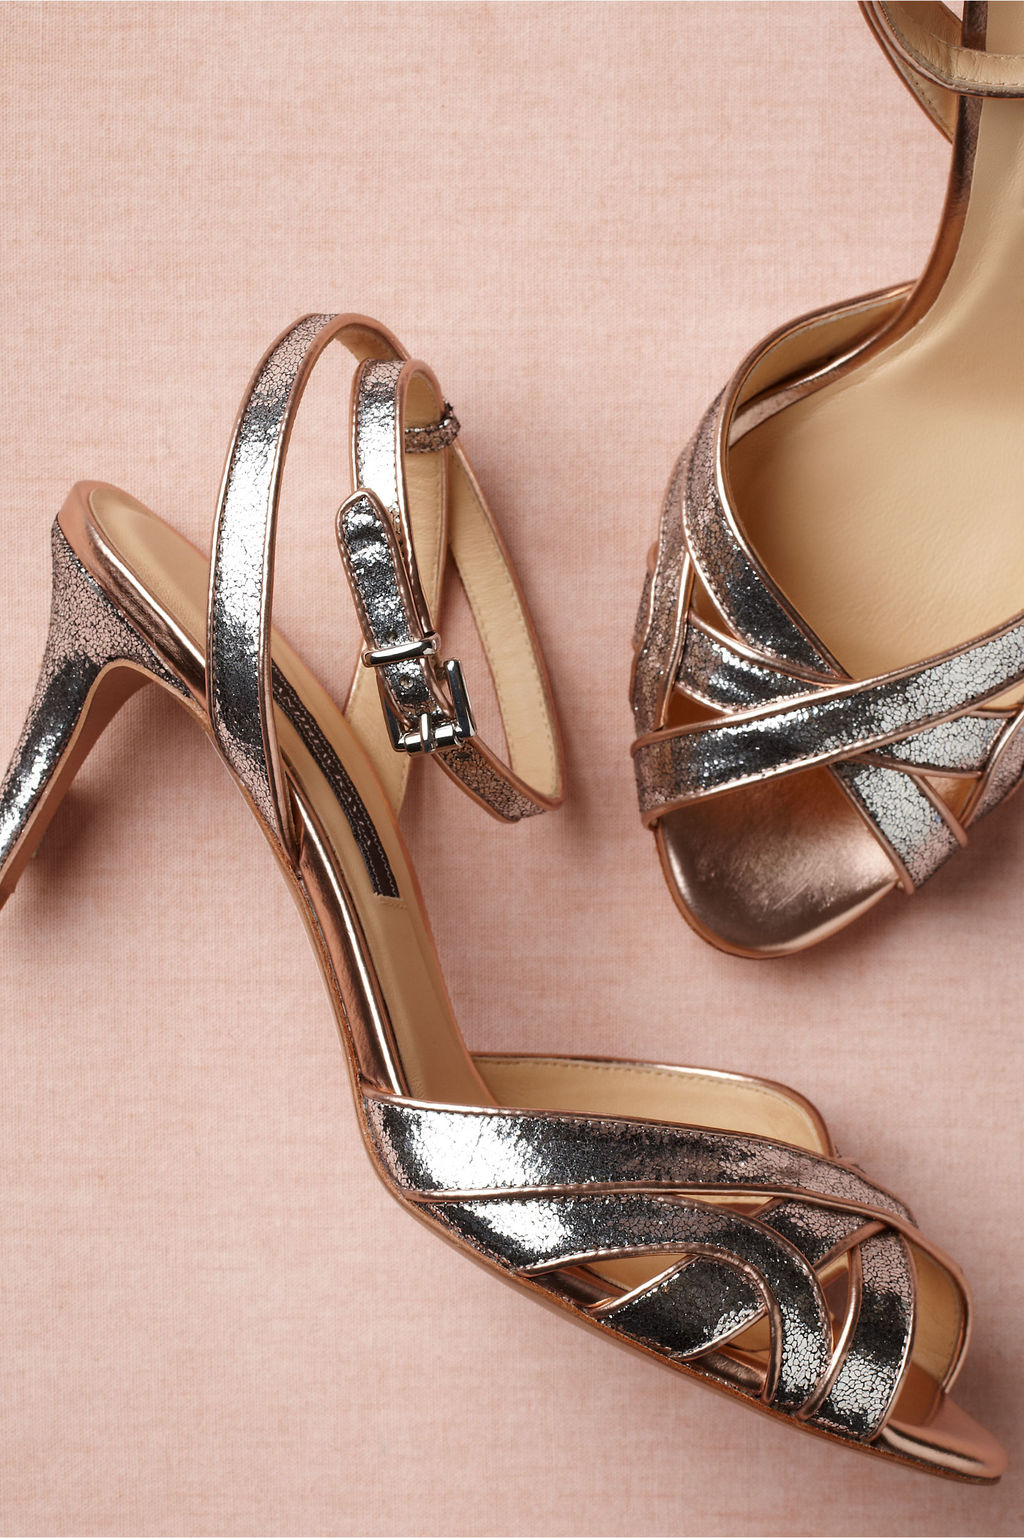 Rose gold and silver BHLDN wedding shoes